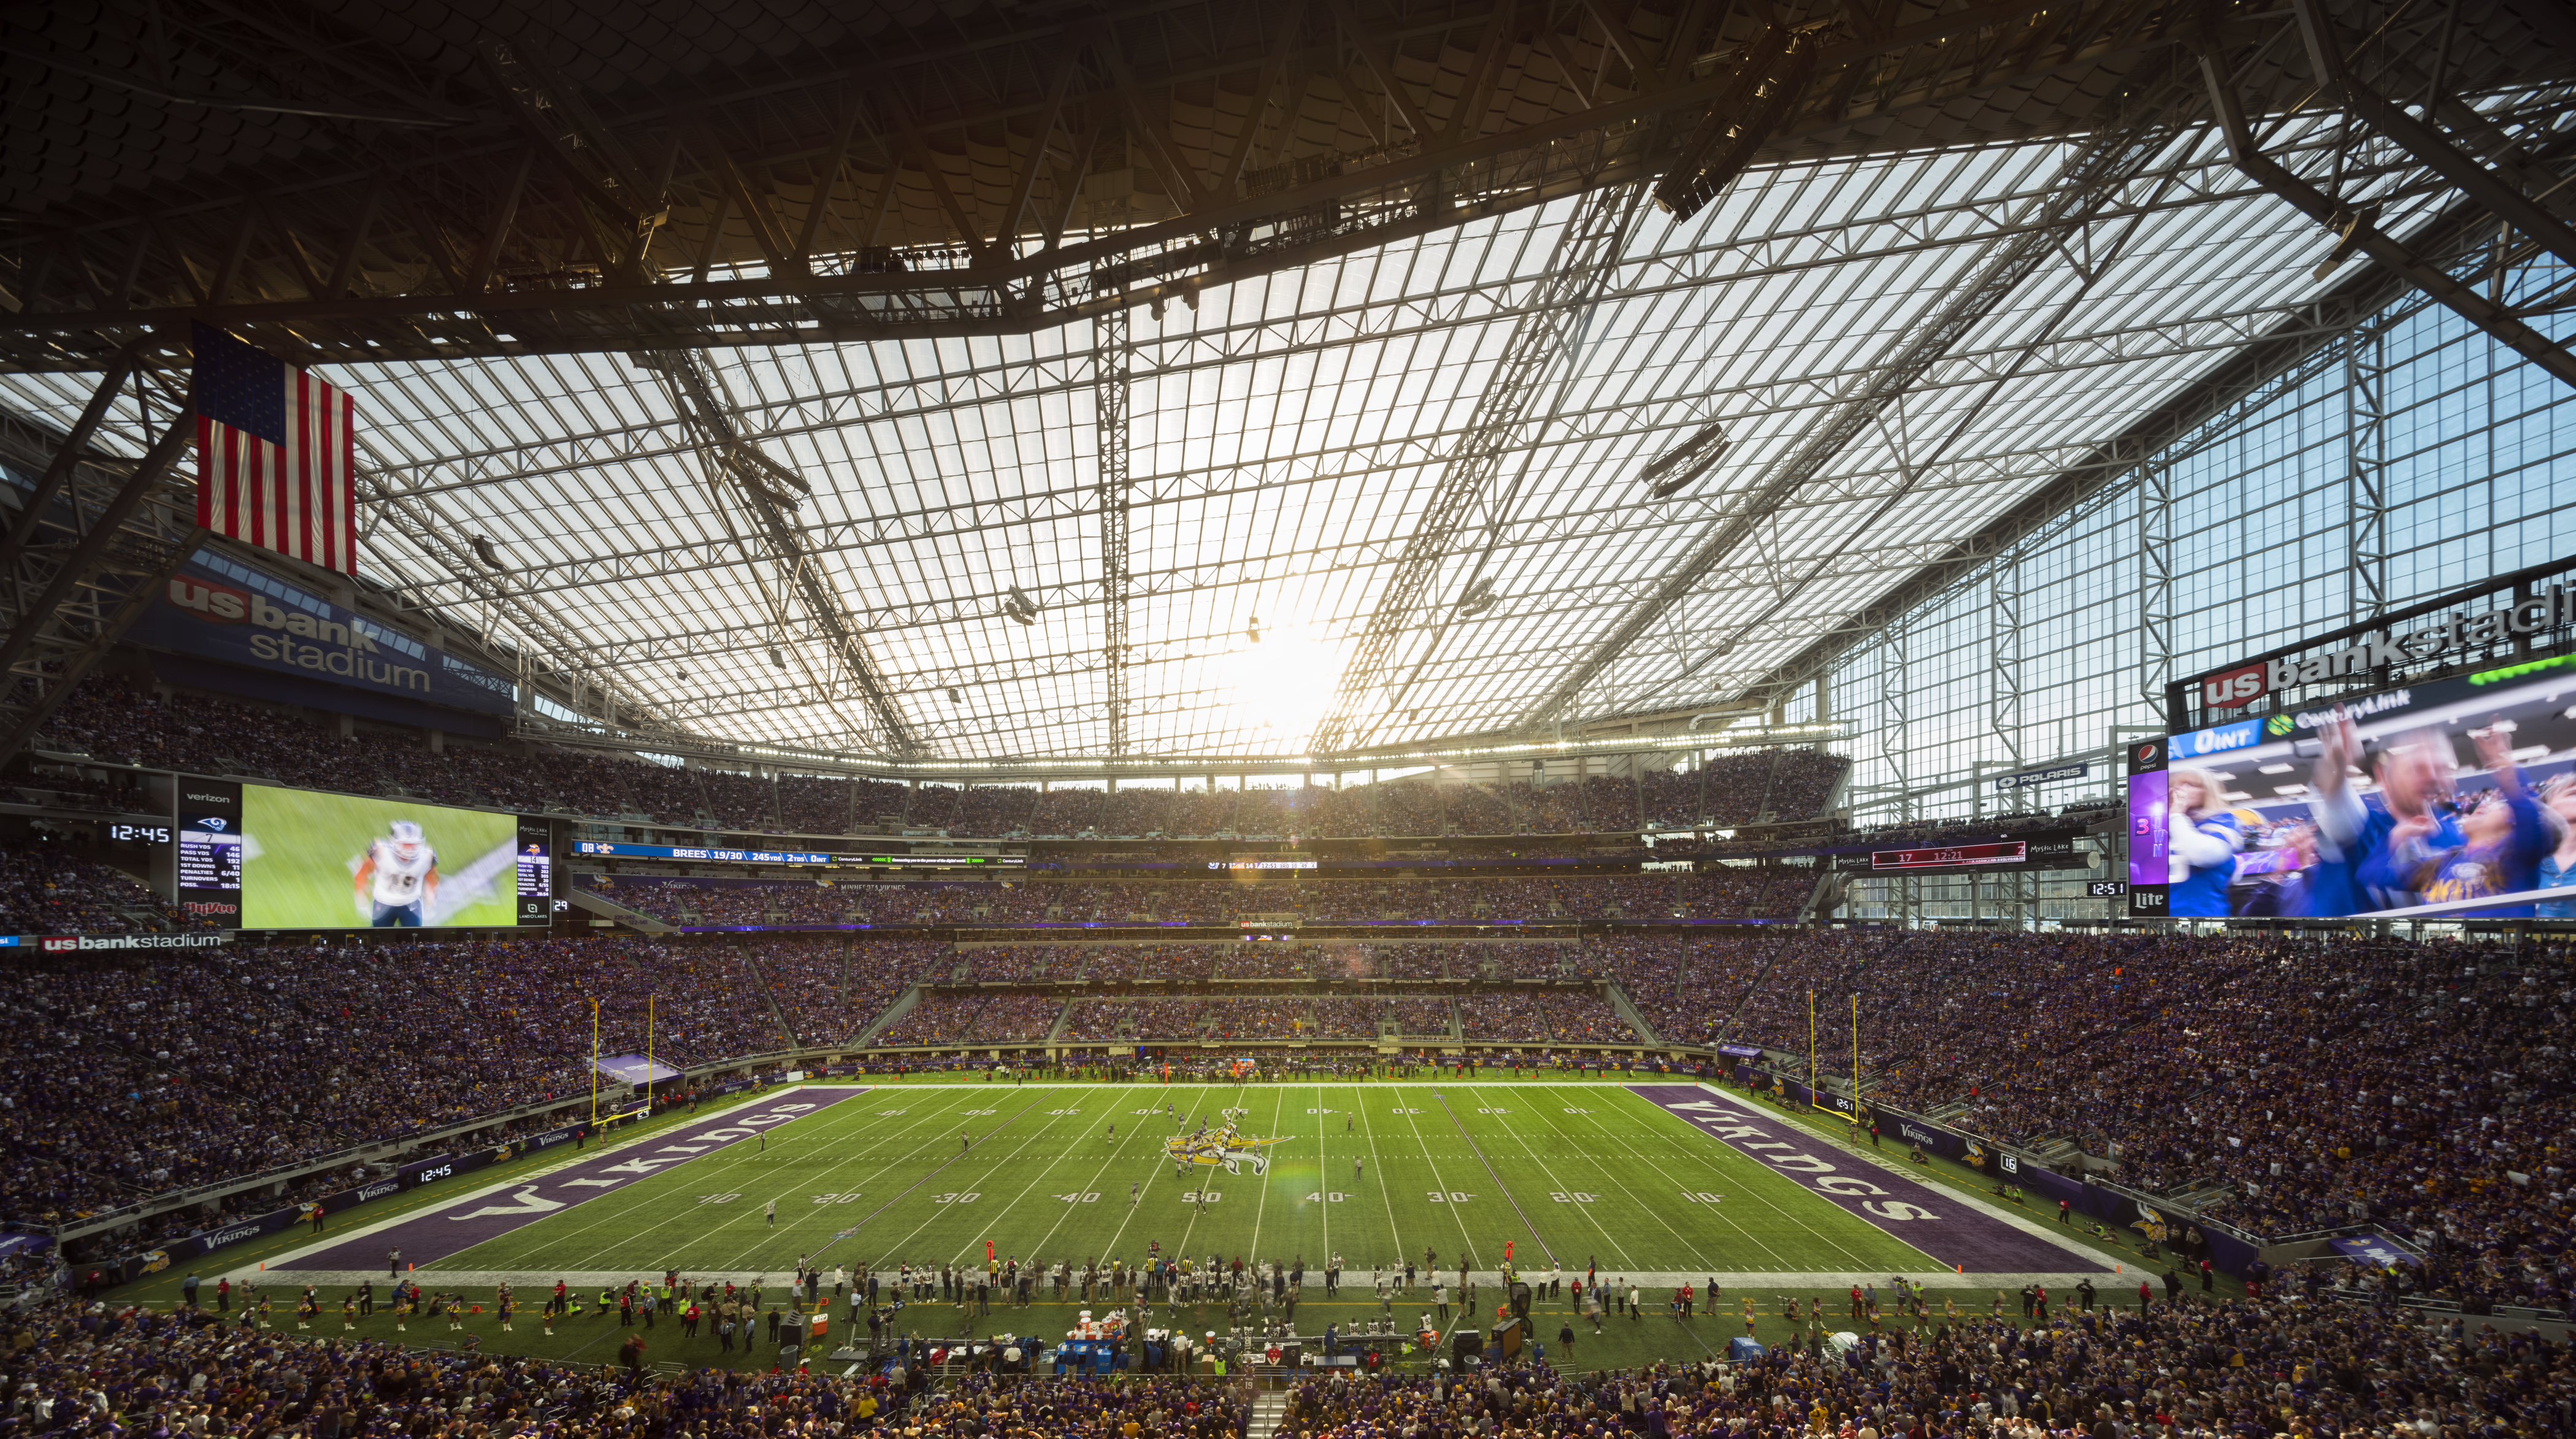 U.S. Bank Stadium in Minneapolis is one of a new generation of glassy, modernist, roofed football stadiums. Designed by HKS, it is linked to downtown and the airport by a light-rail system. The glass walls enable natural light into the venue and allow fans to see views of the skyline.